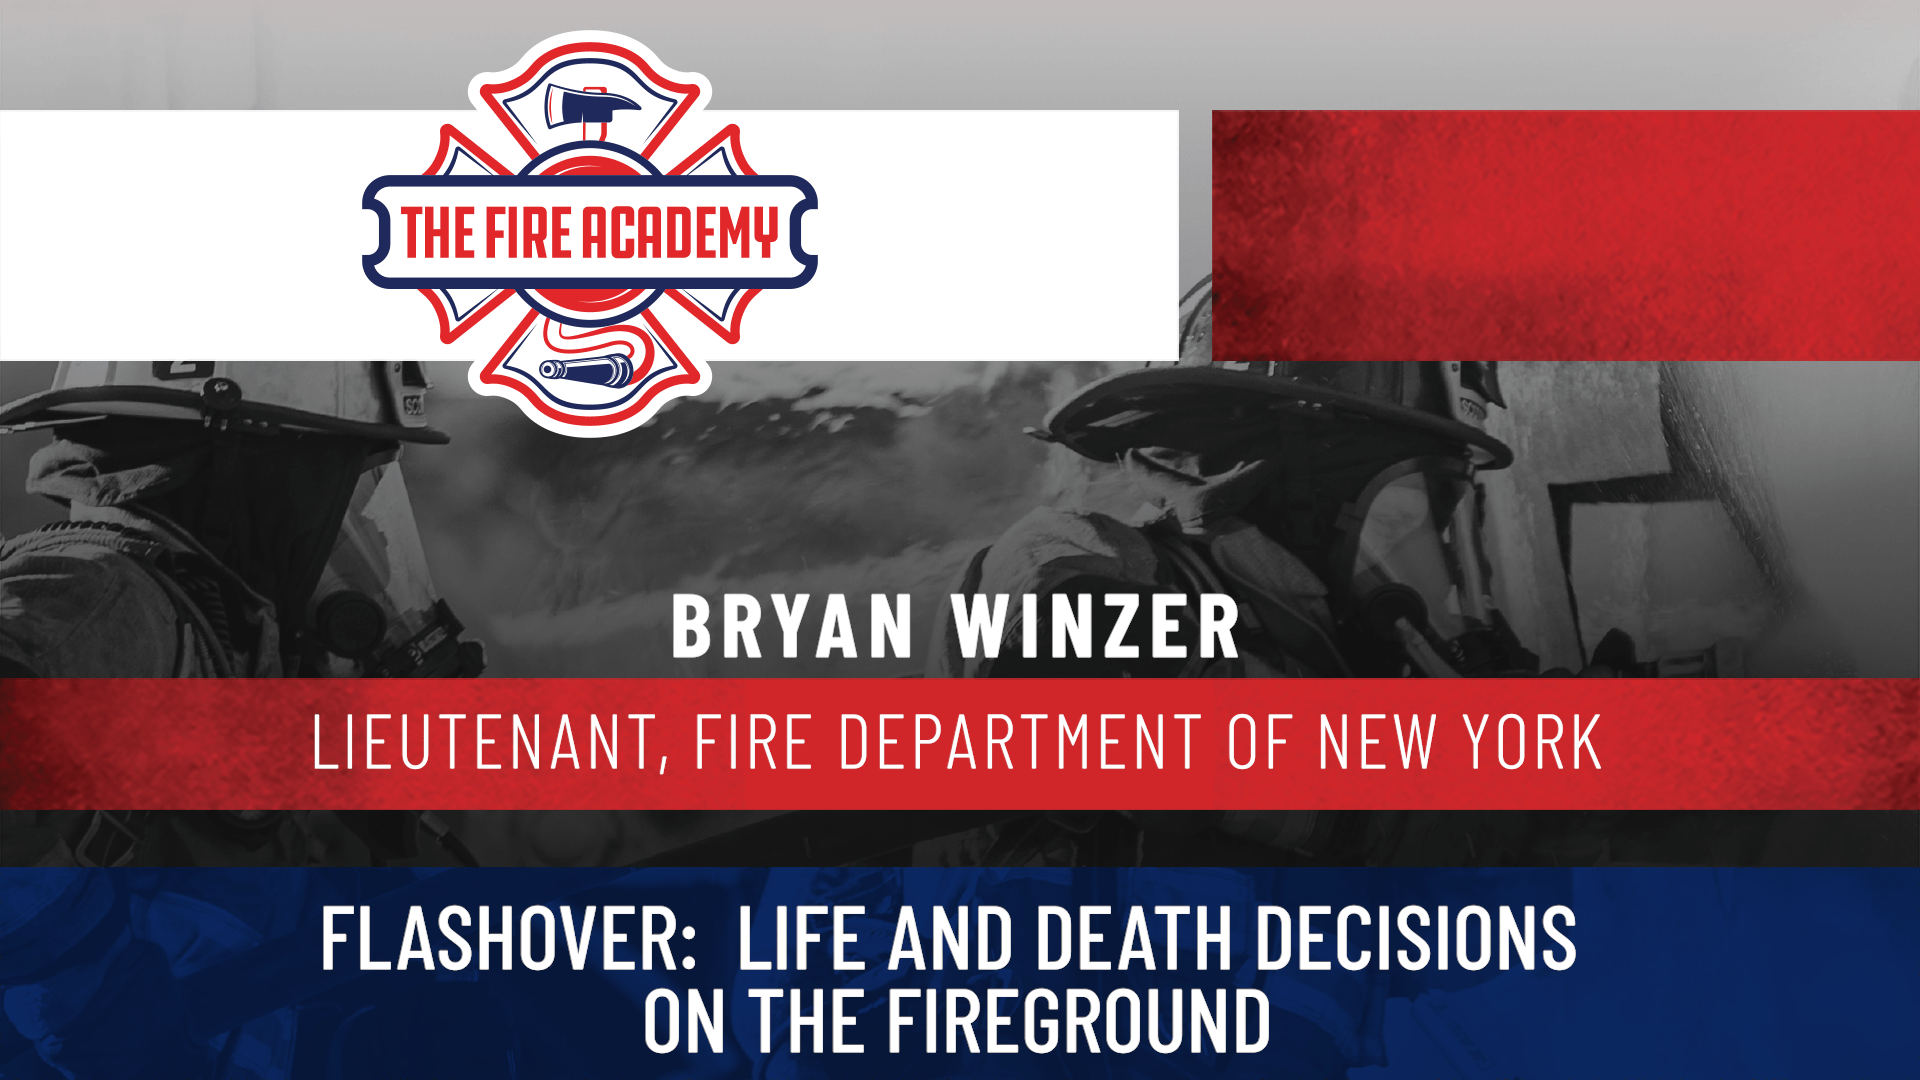 Flashover: Life and Death Decisions on the Fireground